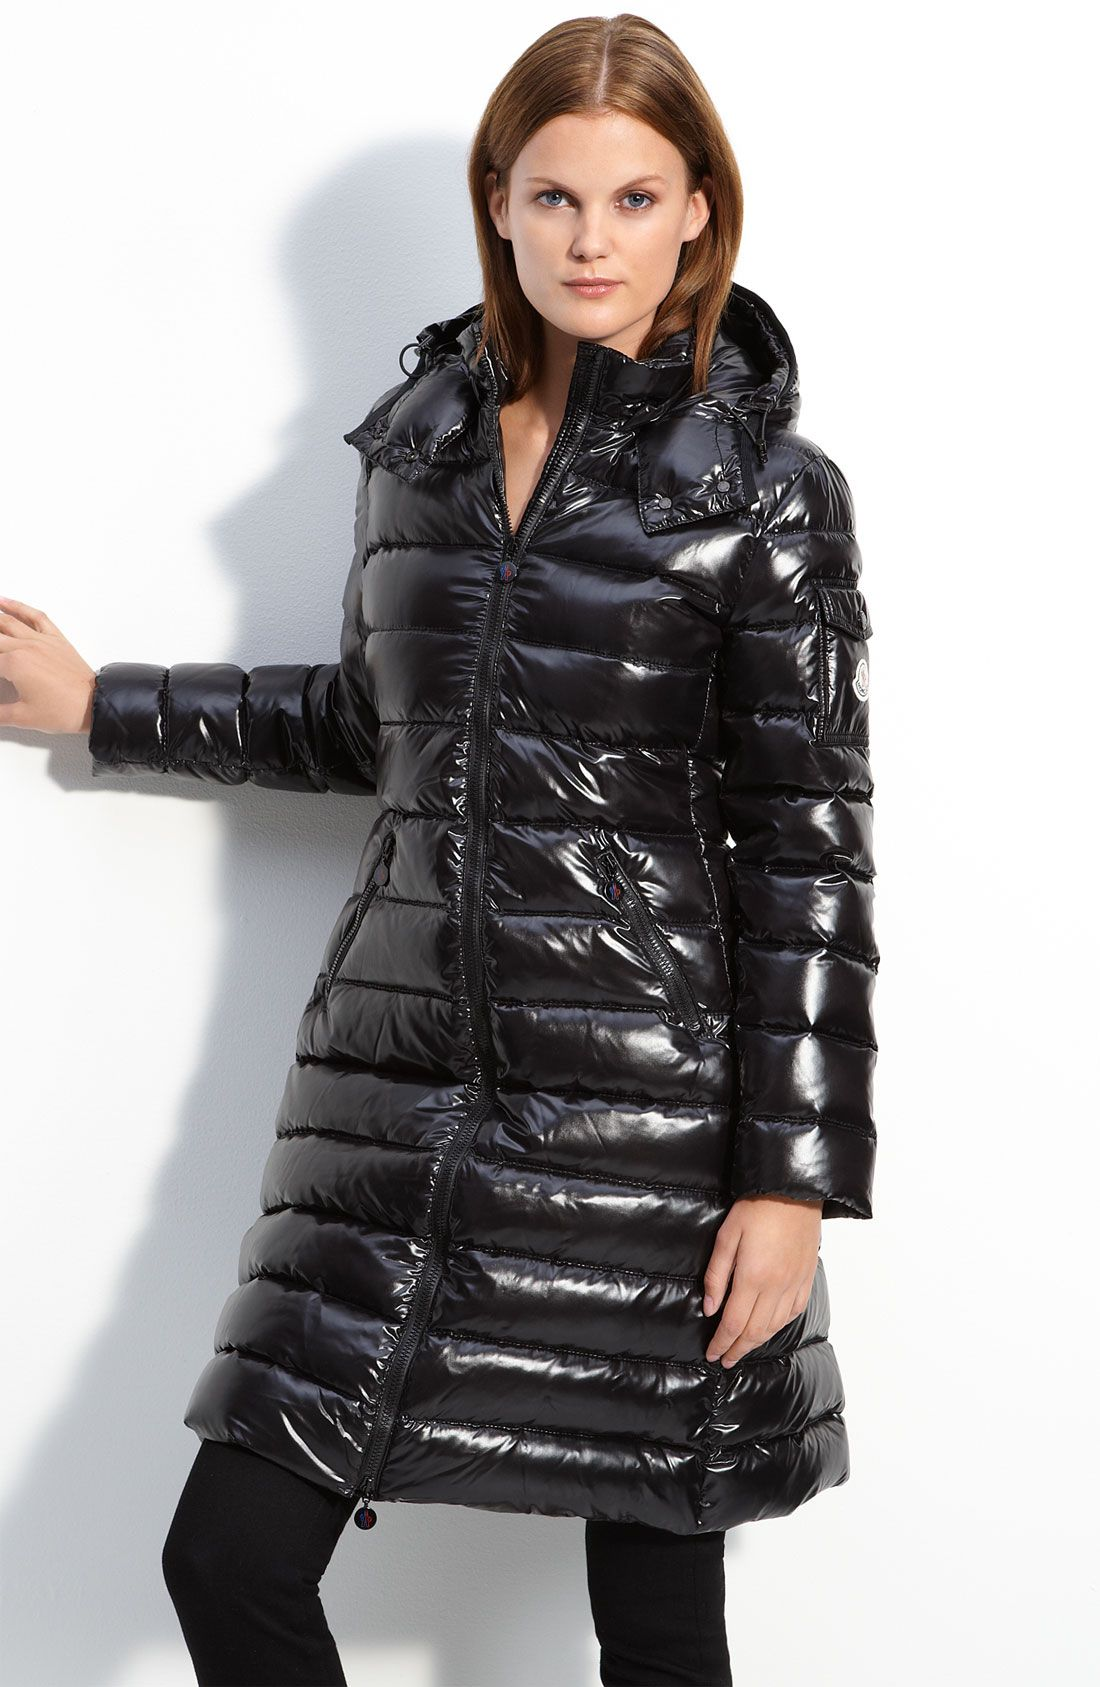 mid-length down jacket - Black Moncler Discount Pick A Best Excellent Prices For Sale Clearance 2018 New JMo7bYptXi